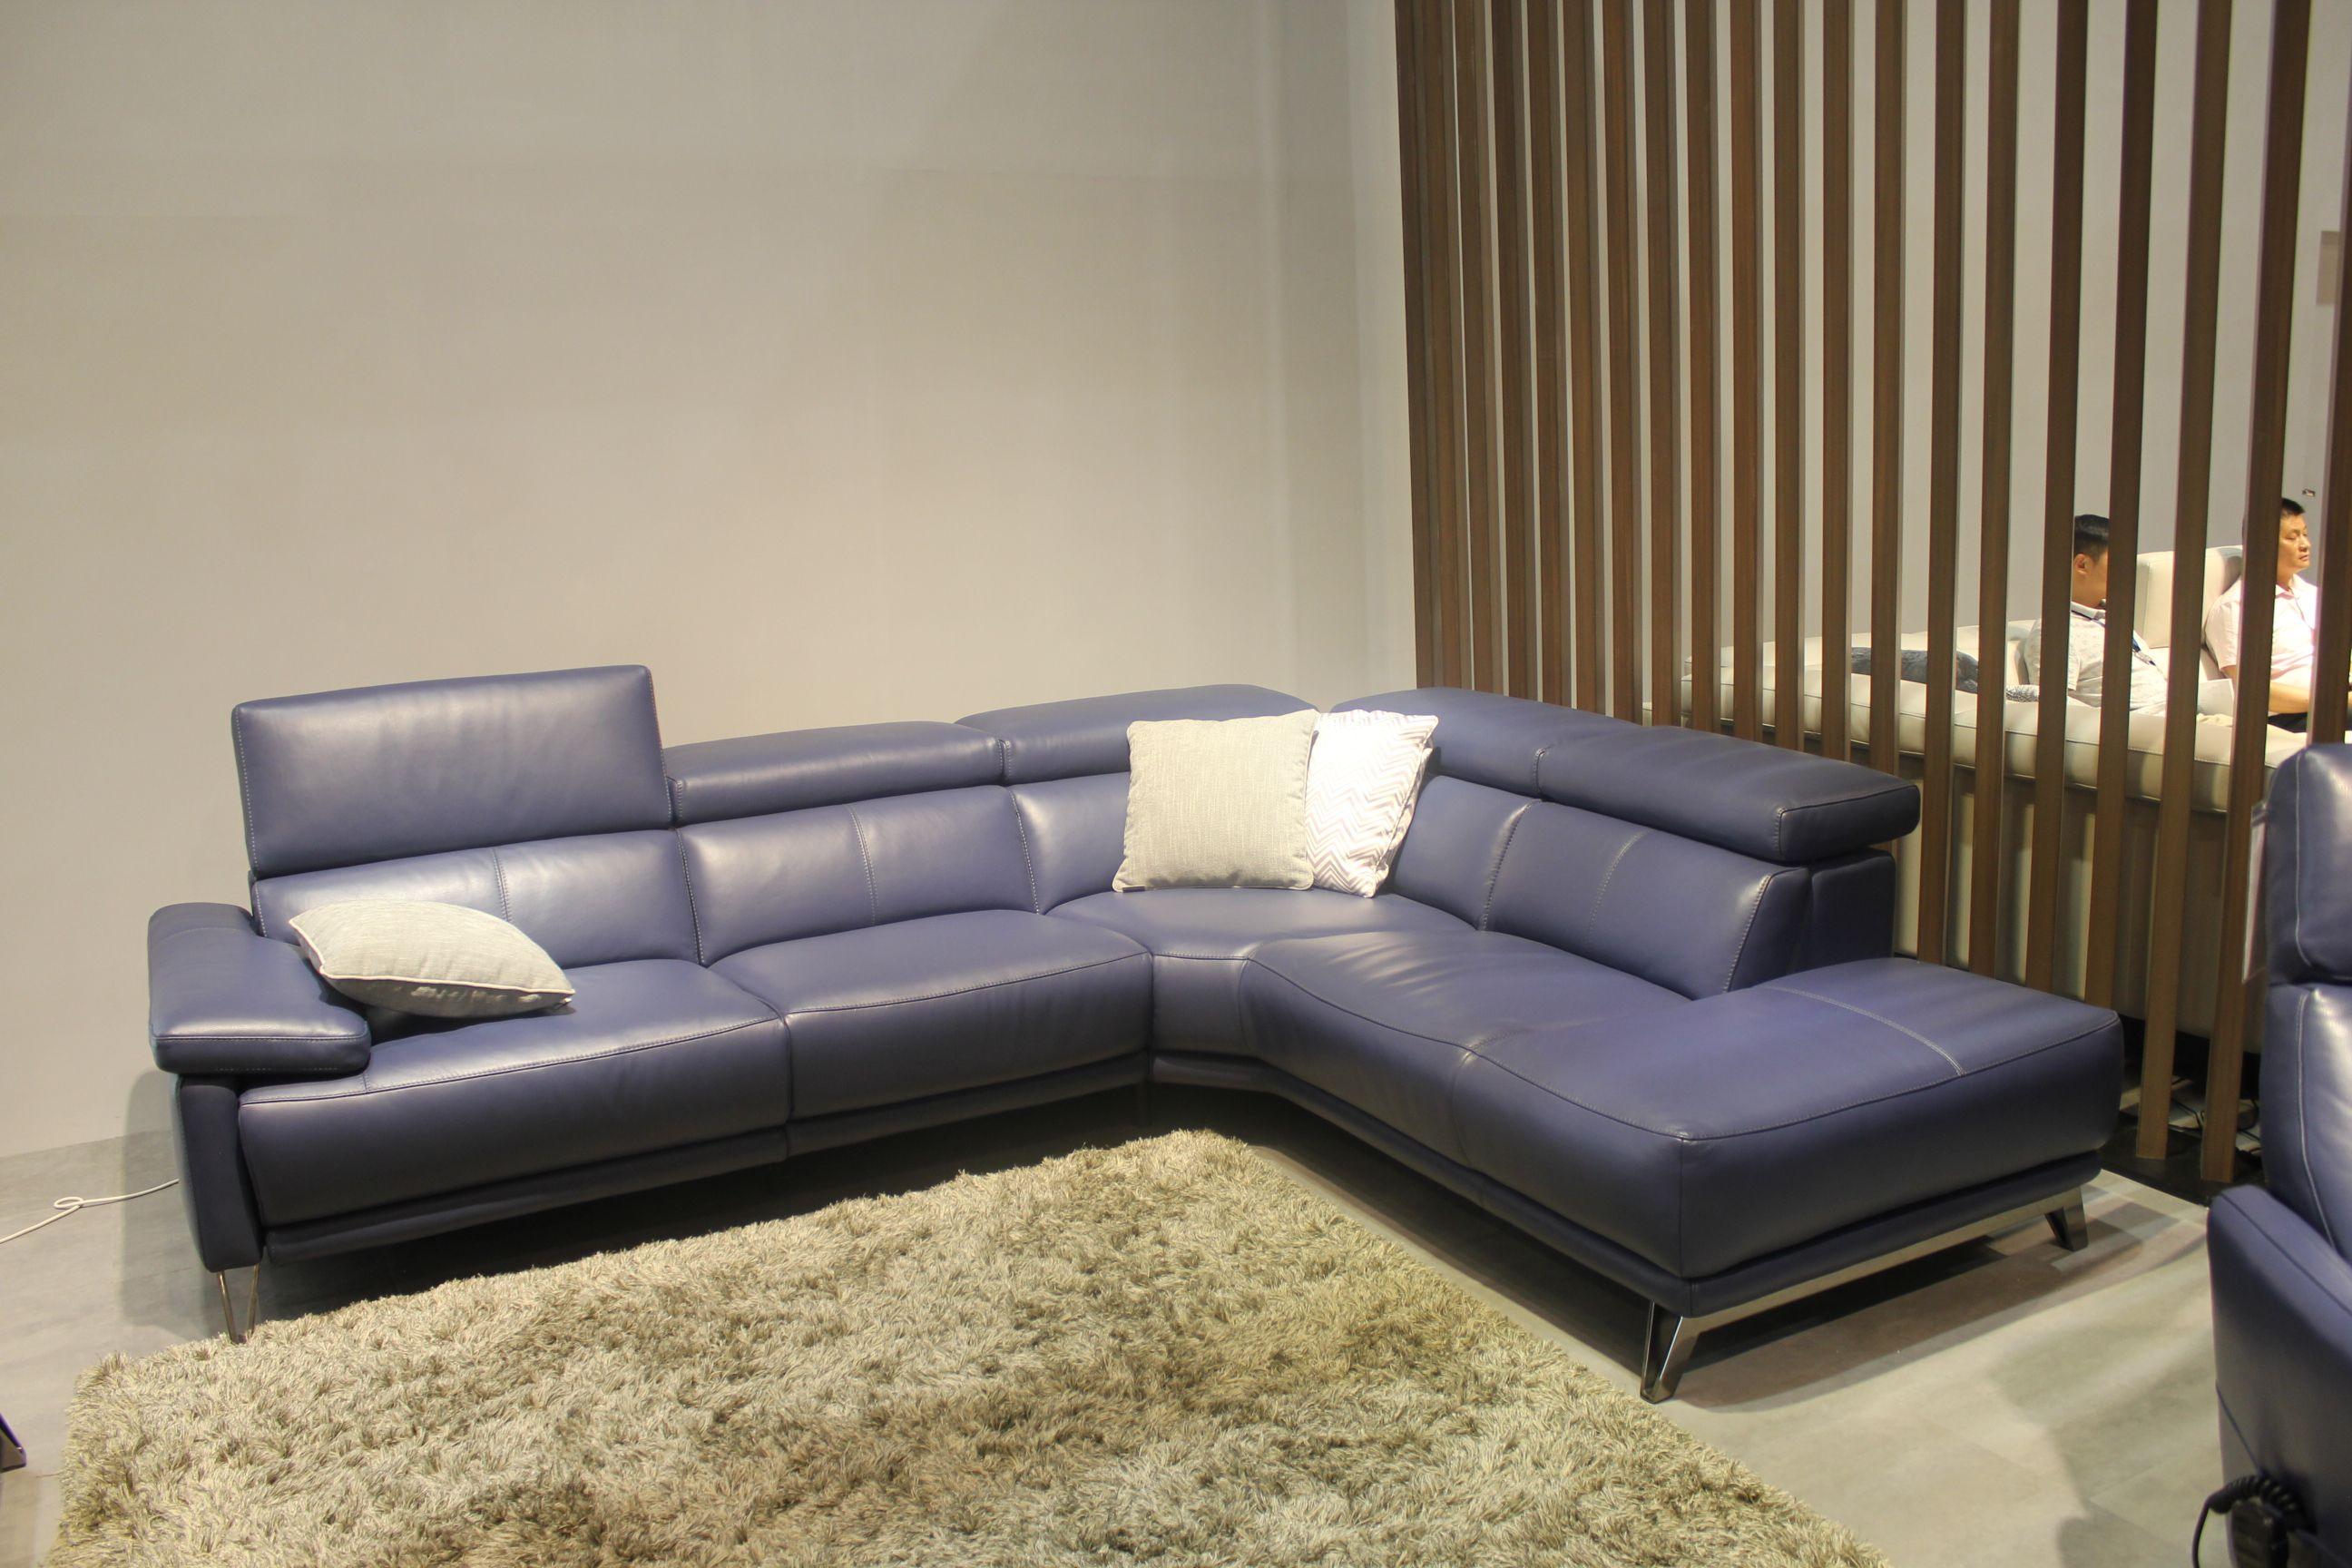 Sofas Sectionalsofa Sectional Modelsofa Sofafashion Modelsofa Sofaset Sofasale Sofaforsale Creativef Contemporary Sofa Set Contemporary Sofa Sofa Set